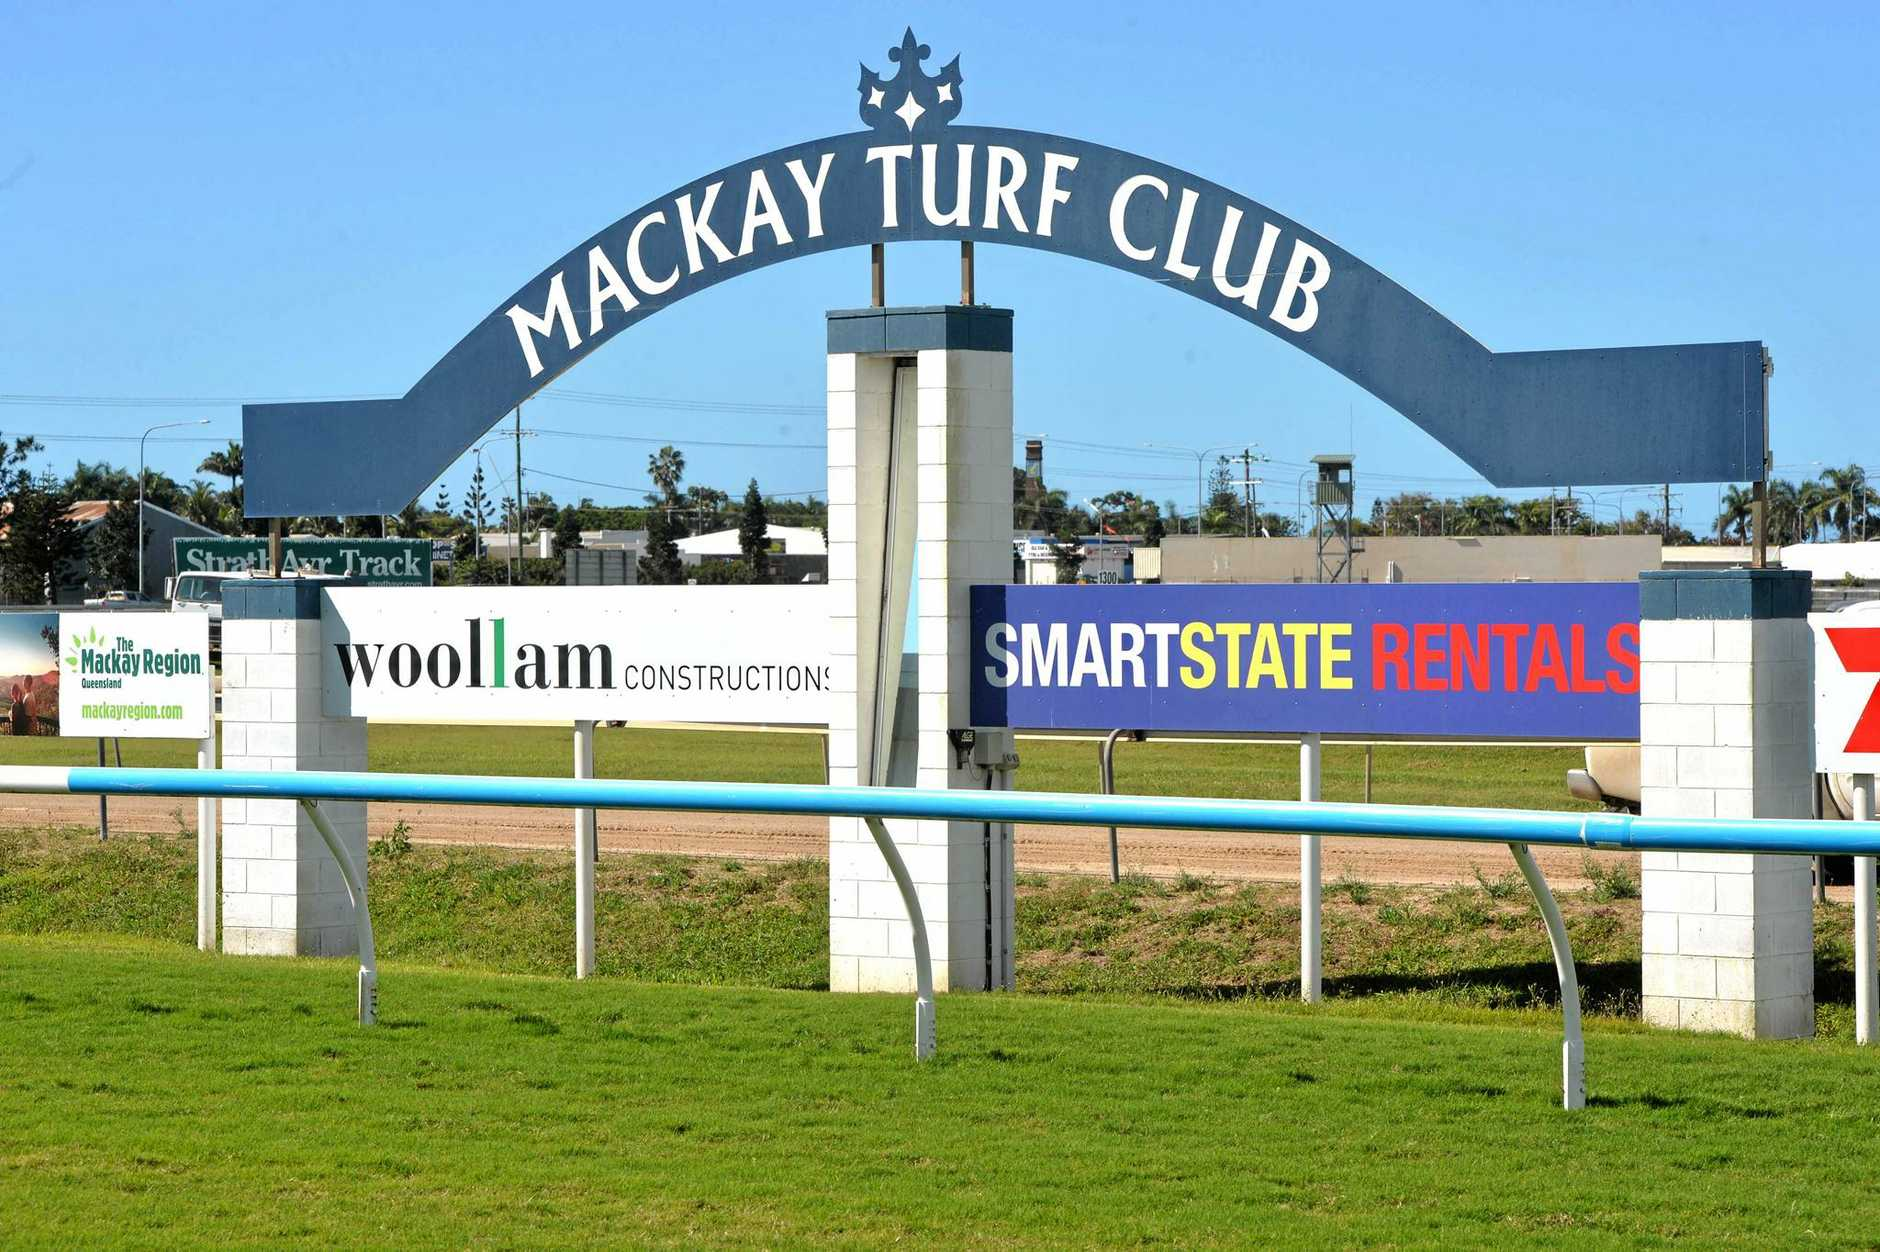 Mackay Turf Club - Finish